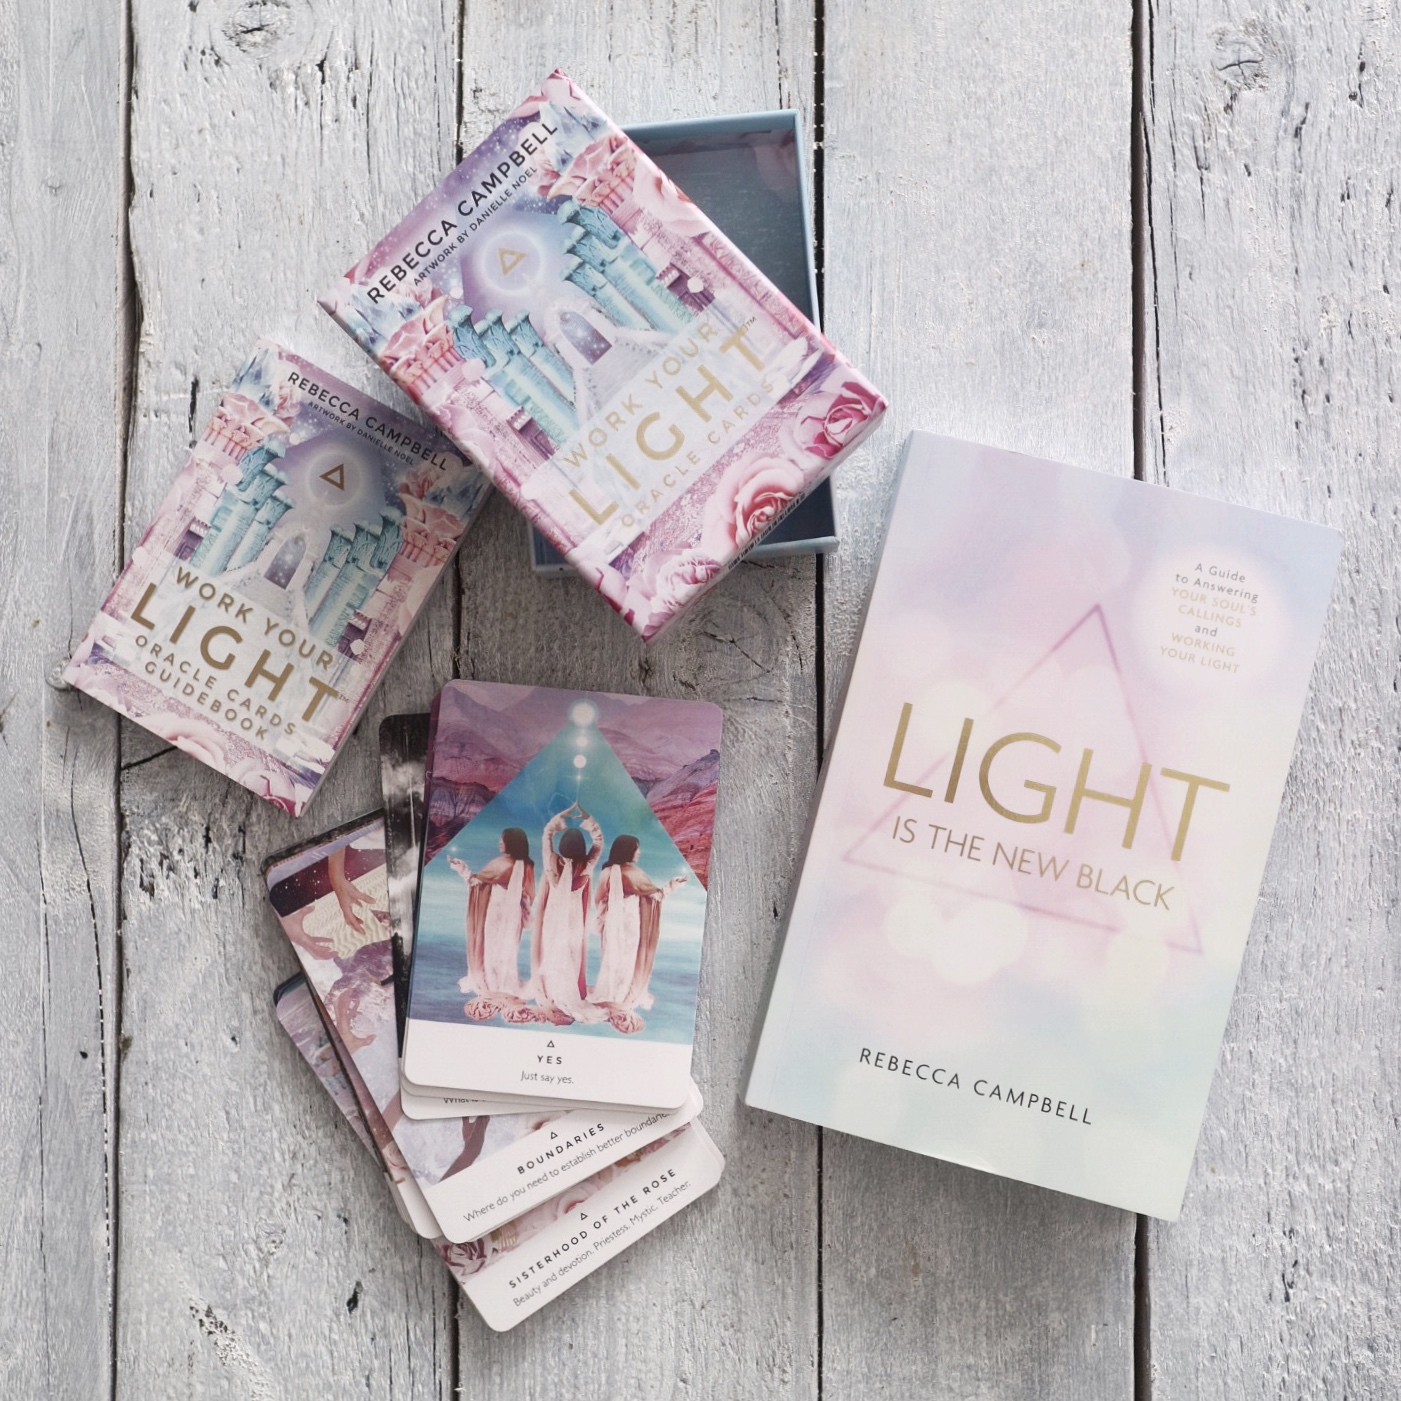 Light is the new black rebecca campbell review